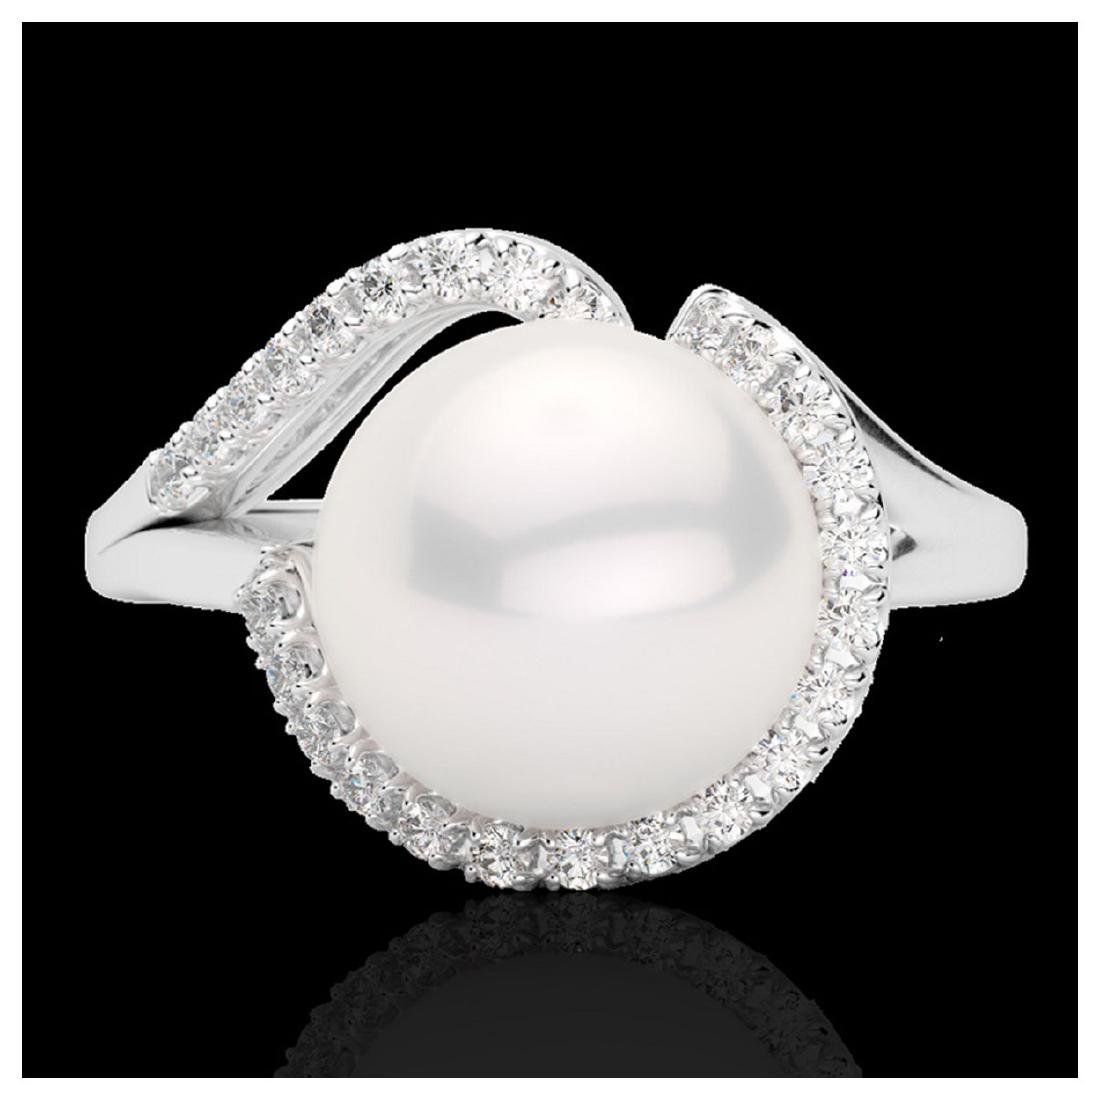 0.27 ctw VS/SI Diamond & White Pearl Ring 18K White